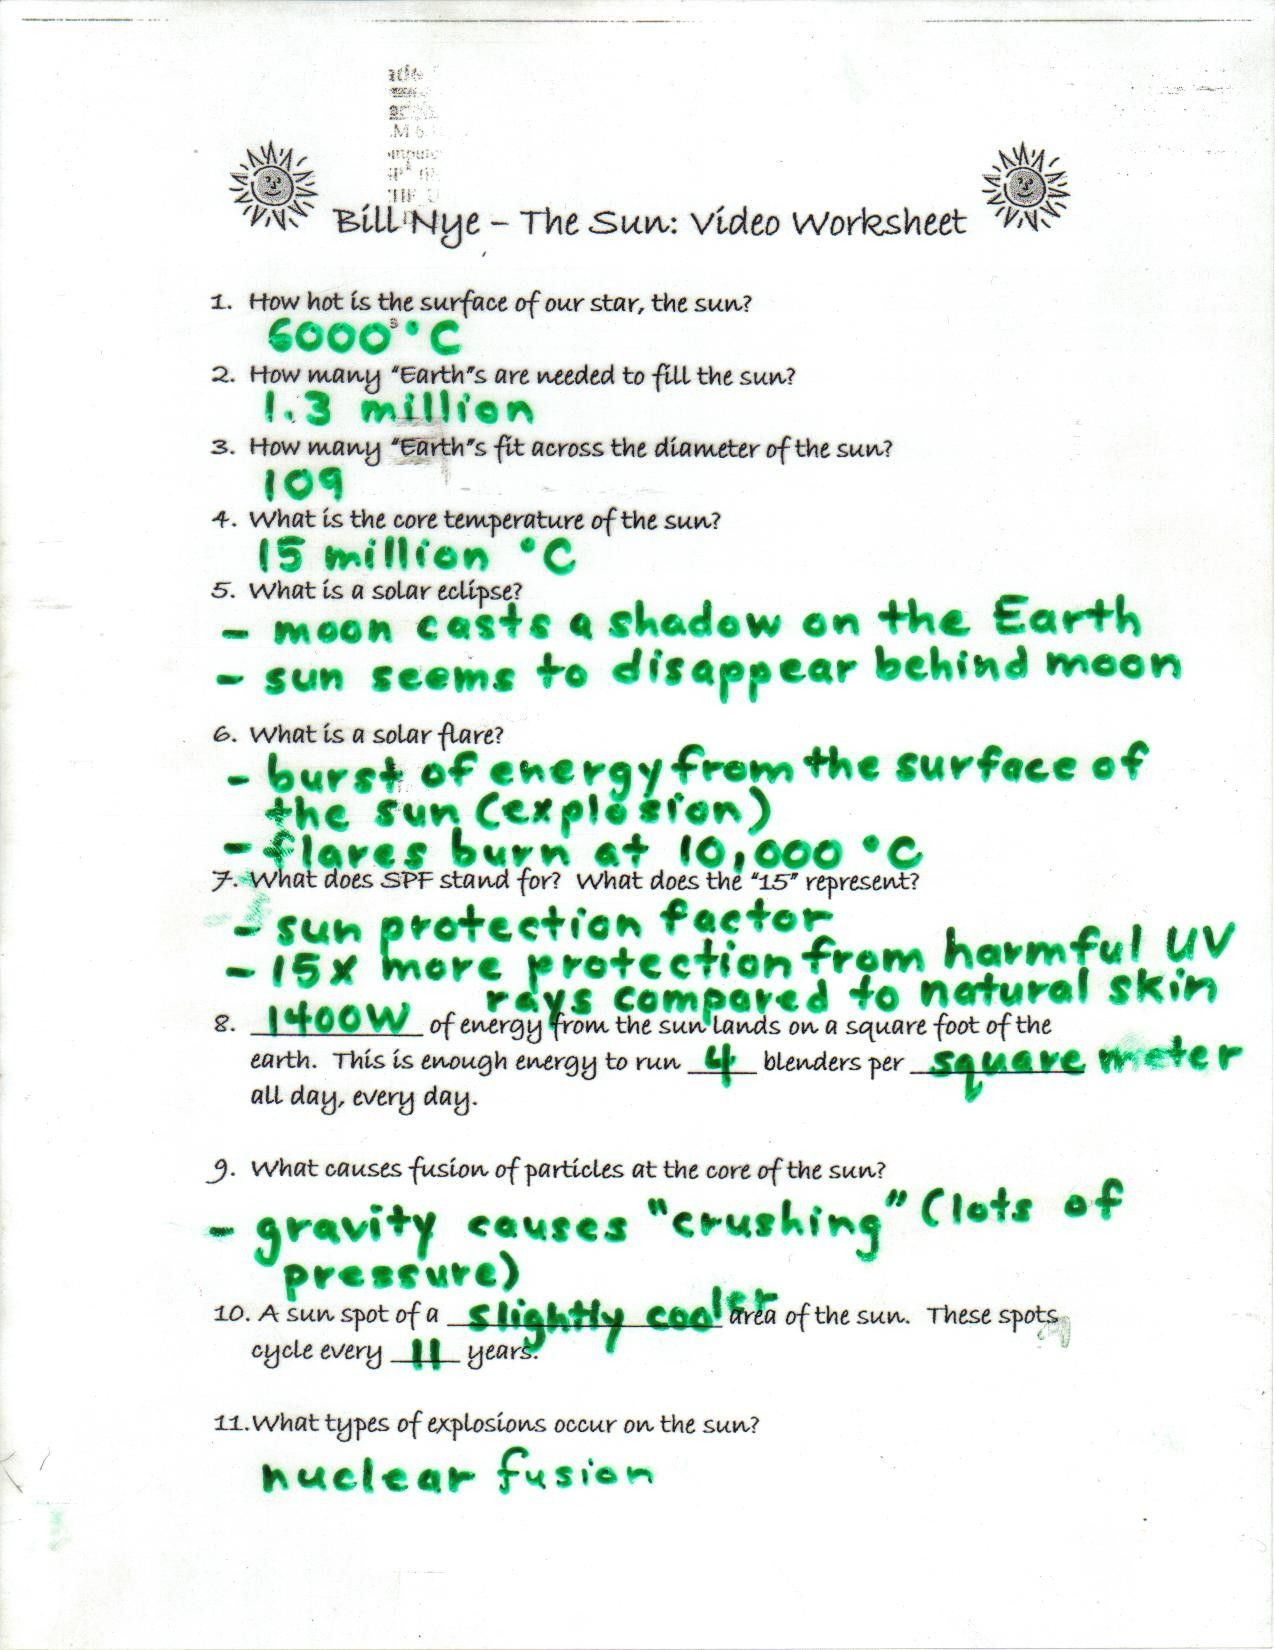 Electromagnetic Radiation Worksheet Answers